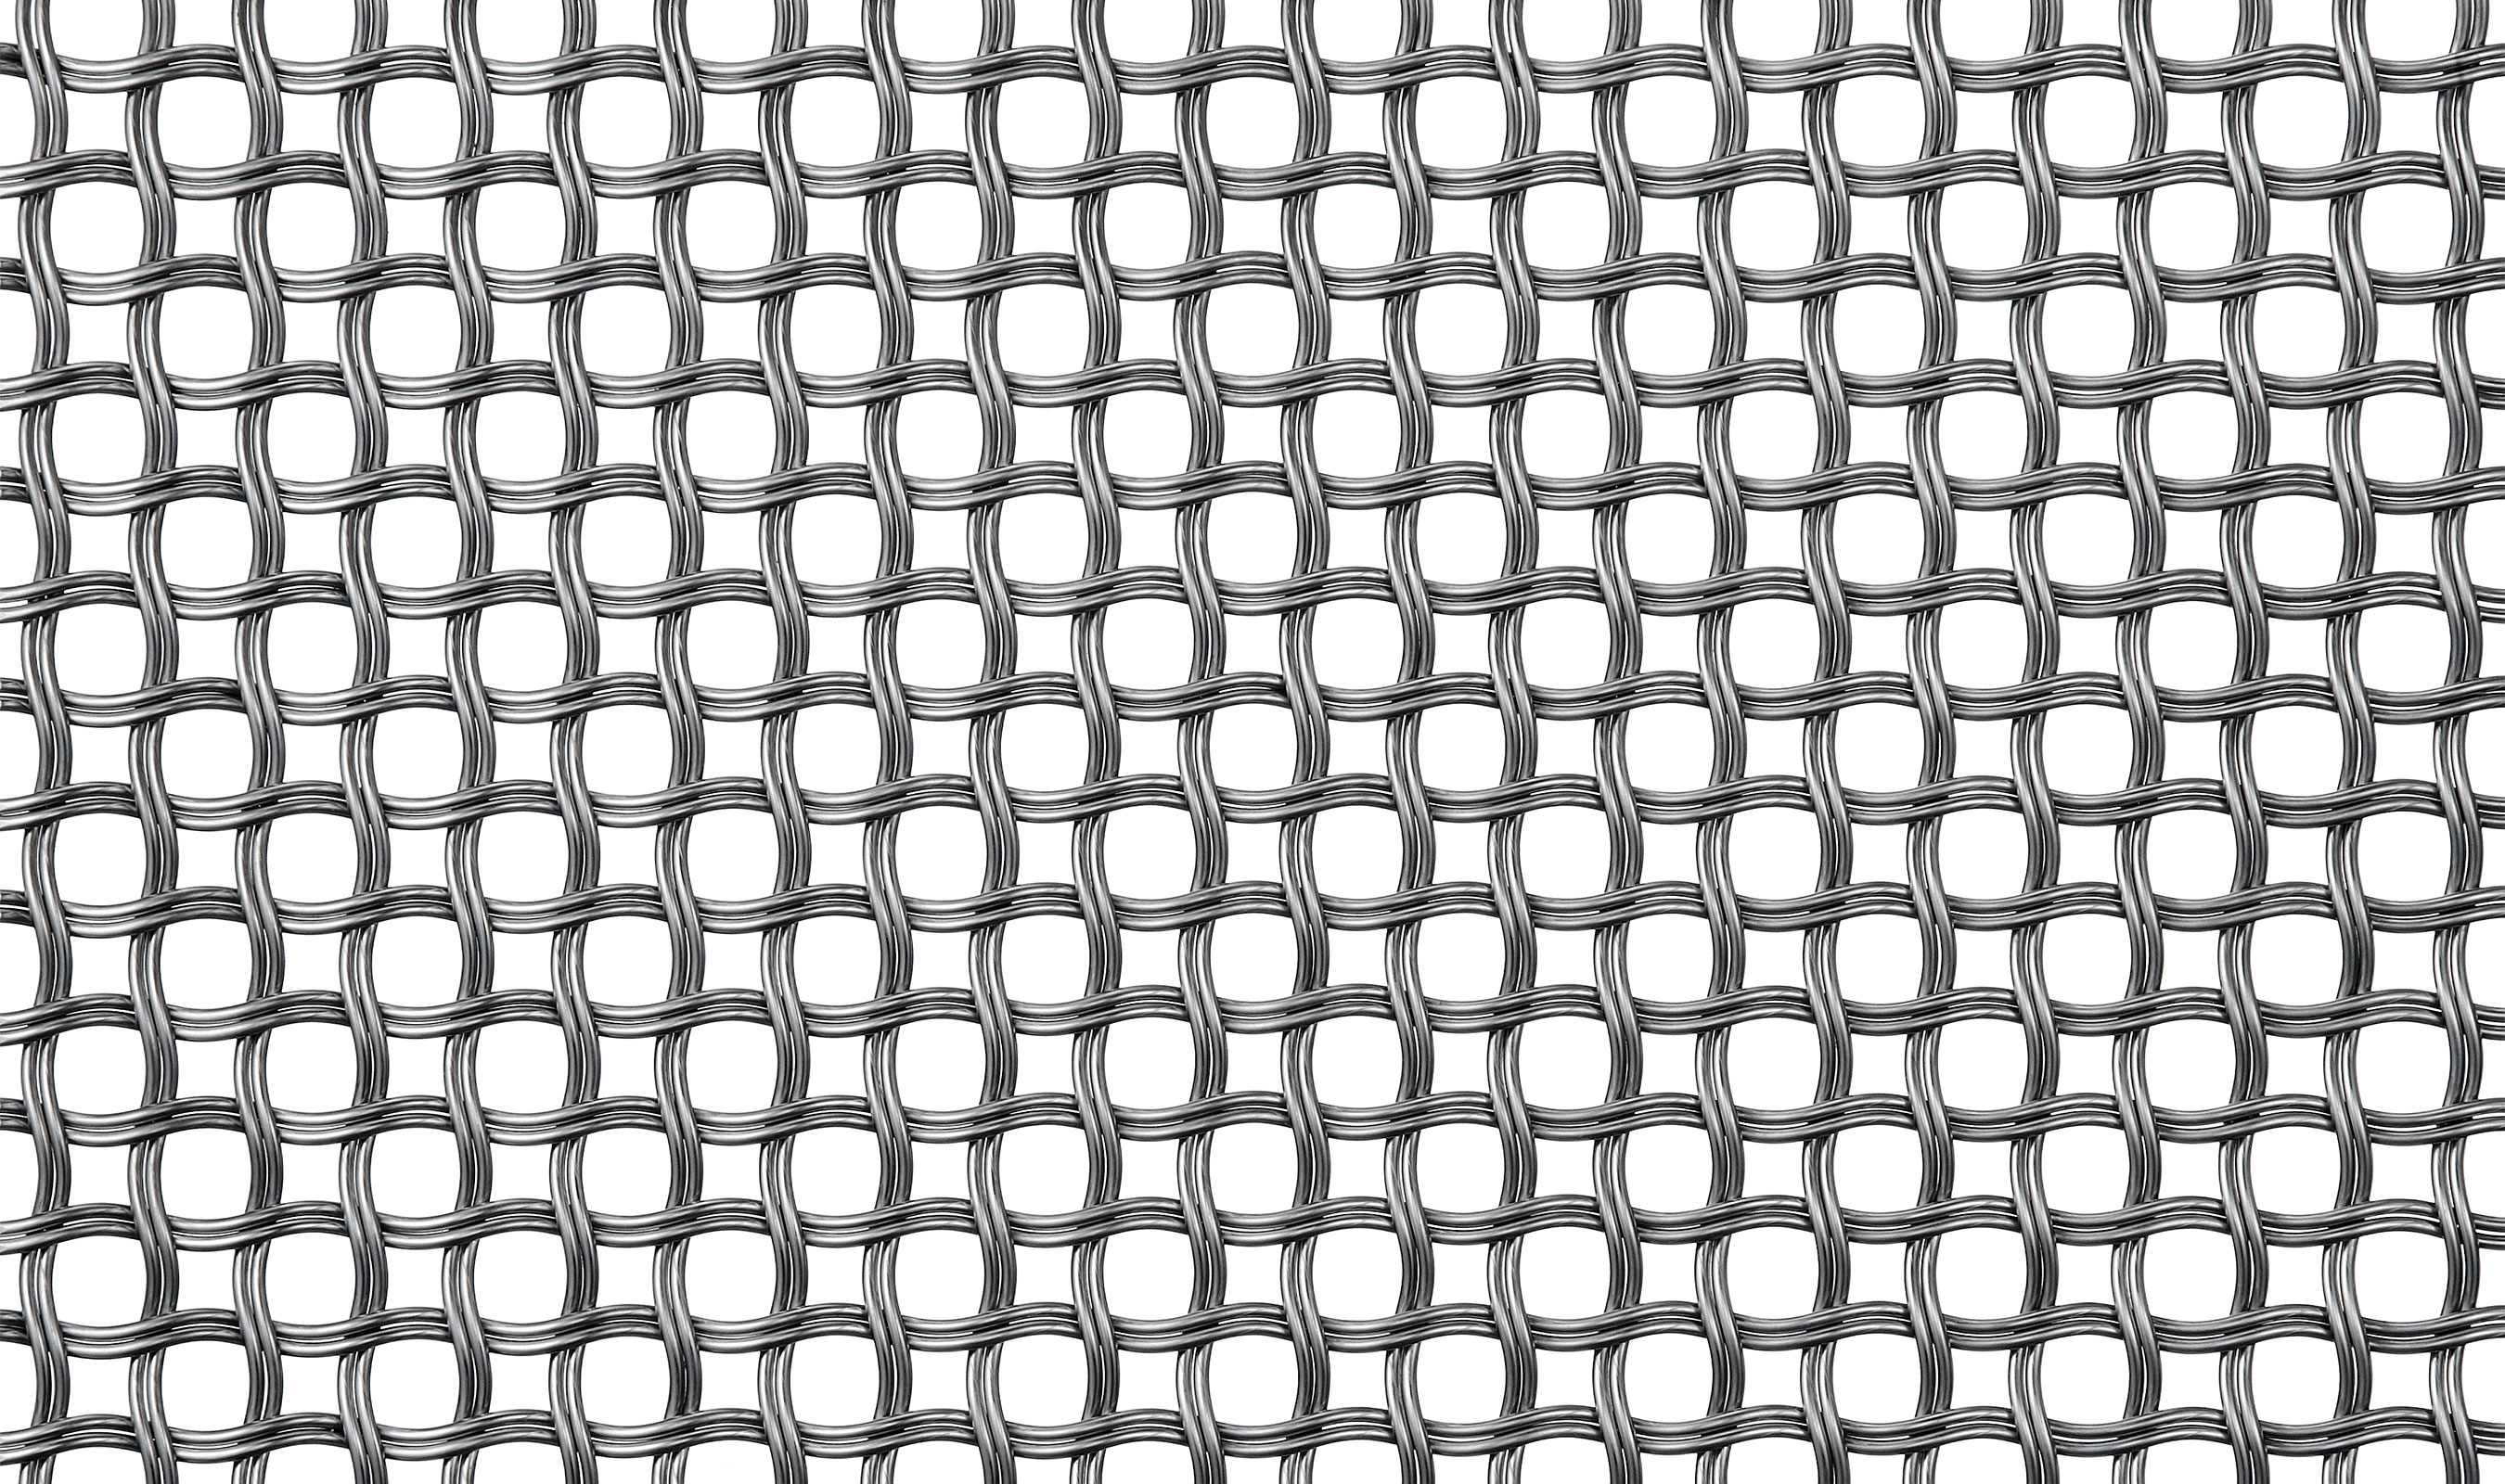 Banker Wire M22-83 decorative wire mesh in Stainless Steel